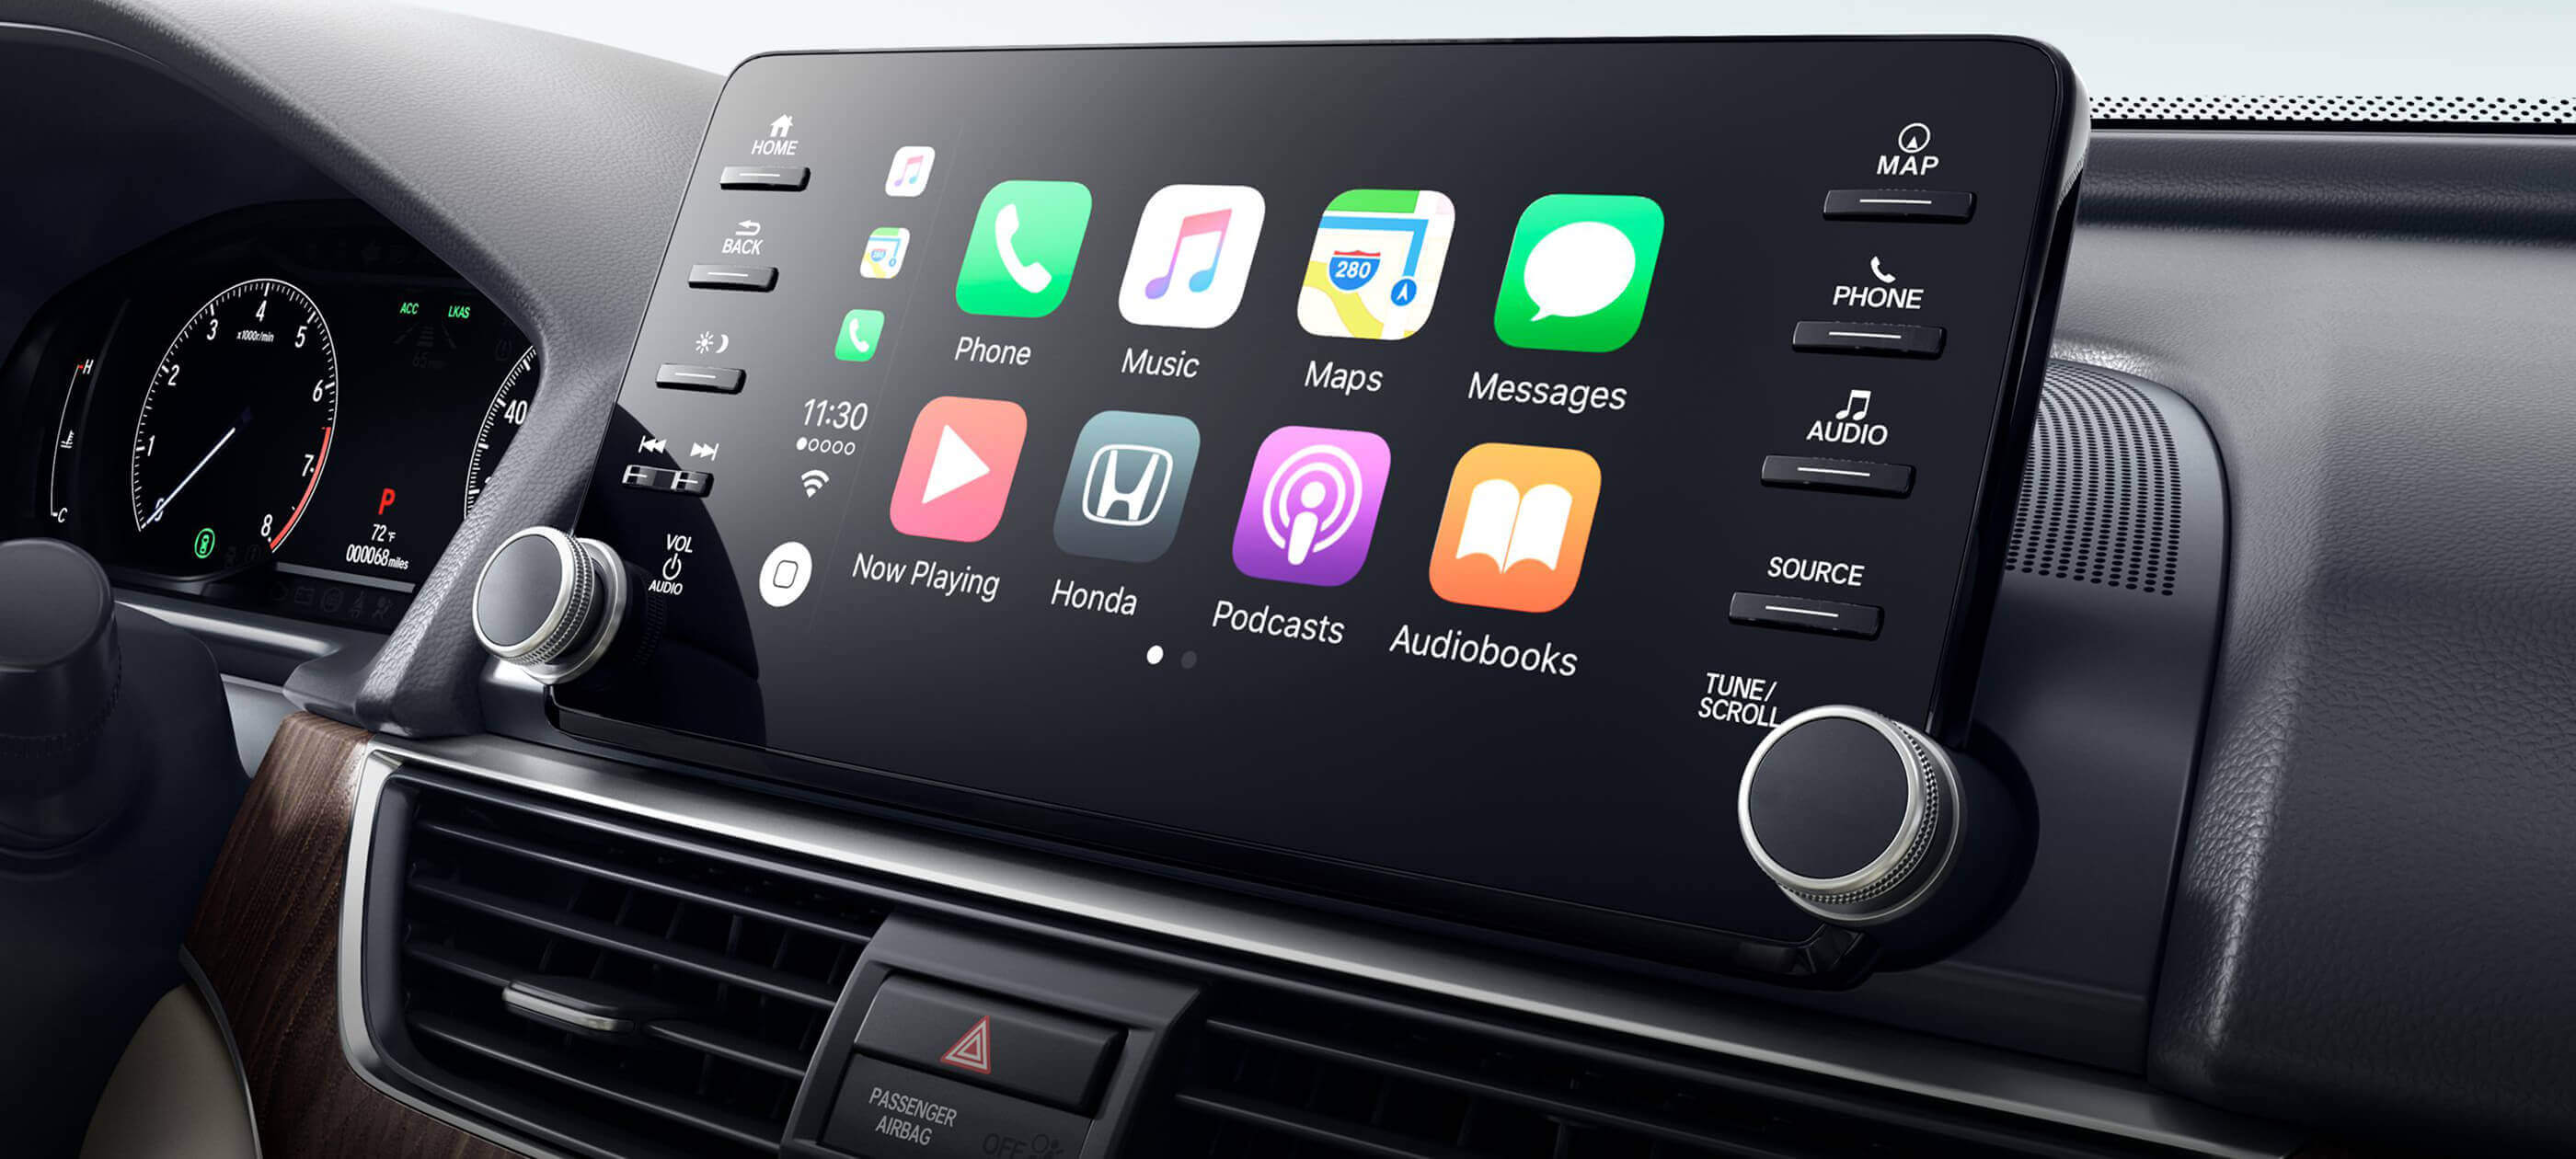 Integración con Apple CarPlay